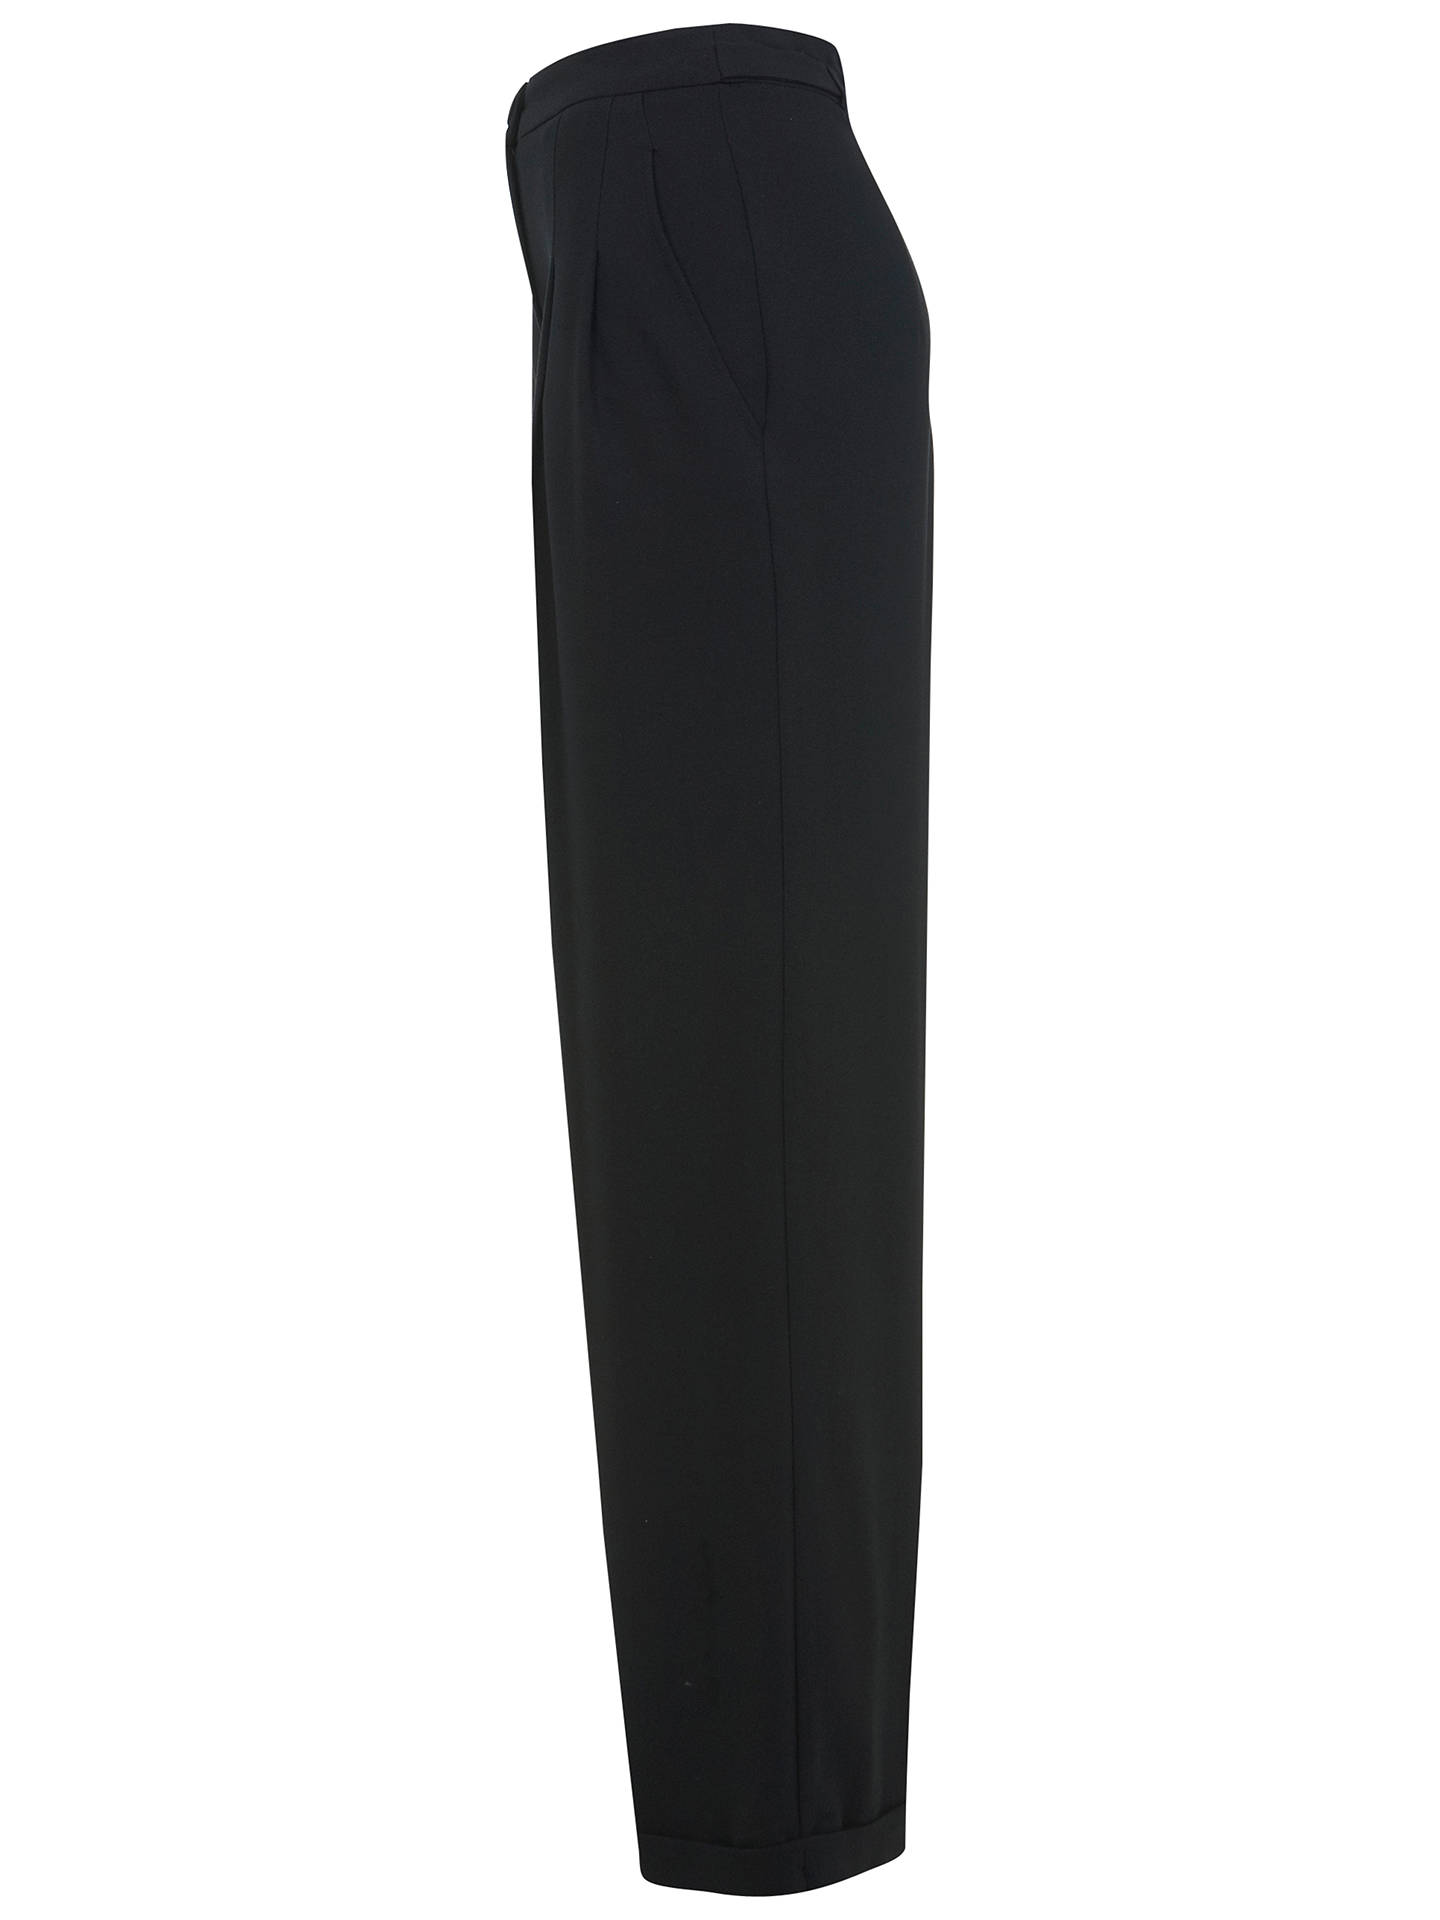 Buy Miss Selfridge High Waisted Trousers, Black, 10 Online at johnlewis.com